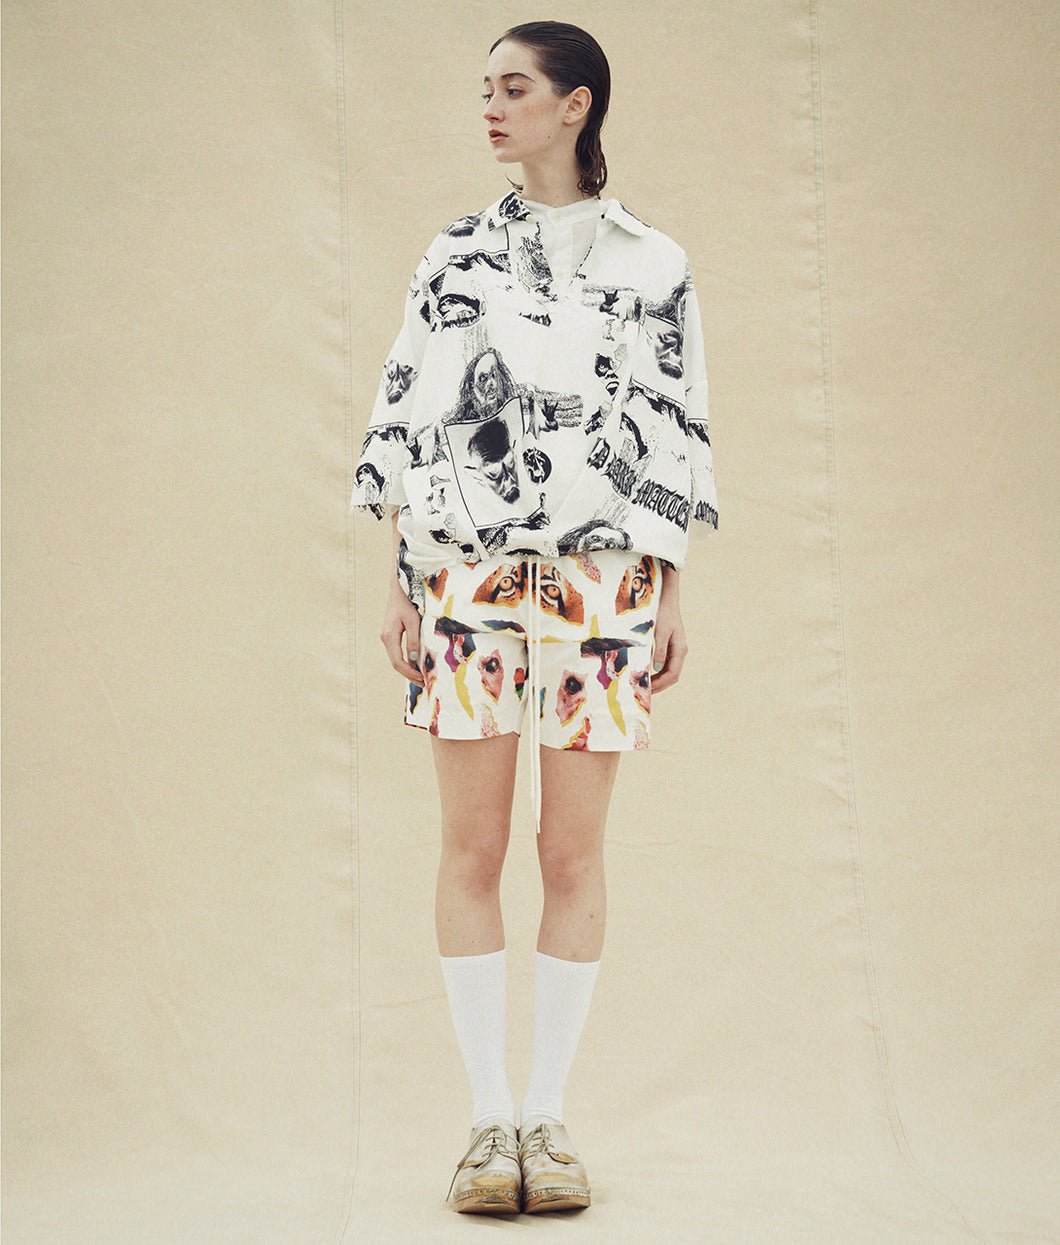 〈JUVENILE HALL ROLLCALL〉COLLAGE PRINT SHORTS / コラージュプリントショーツ (WHITE)